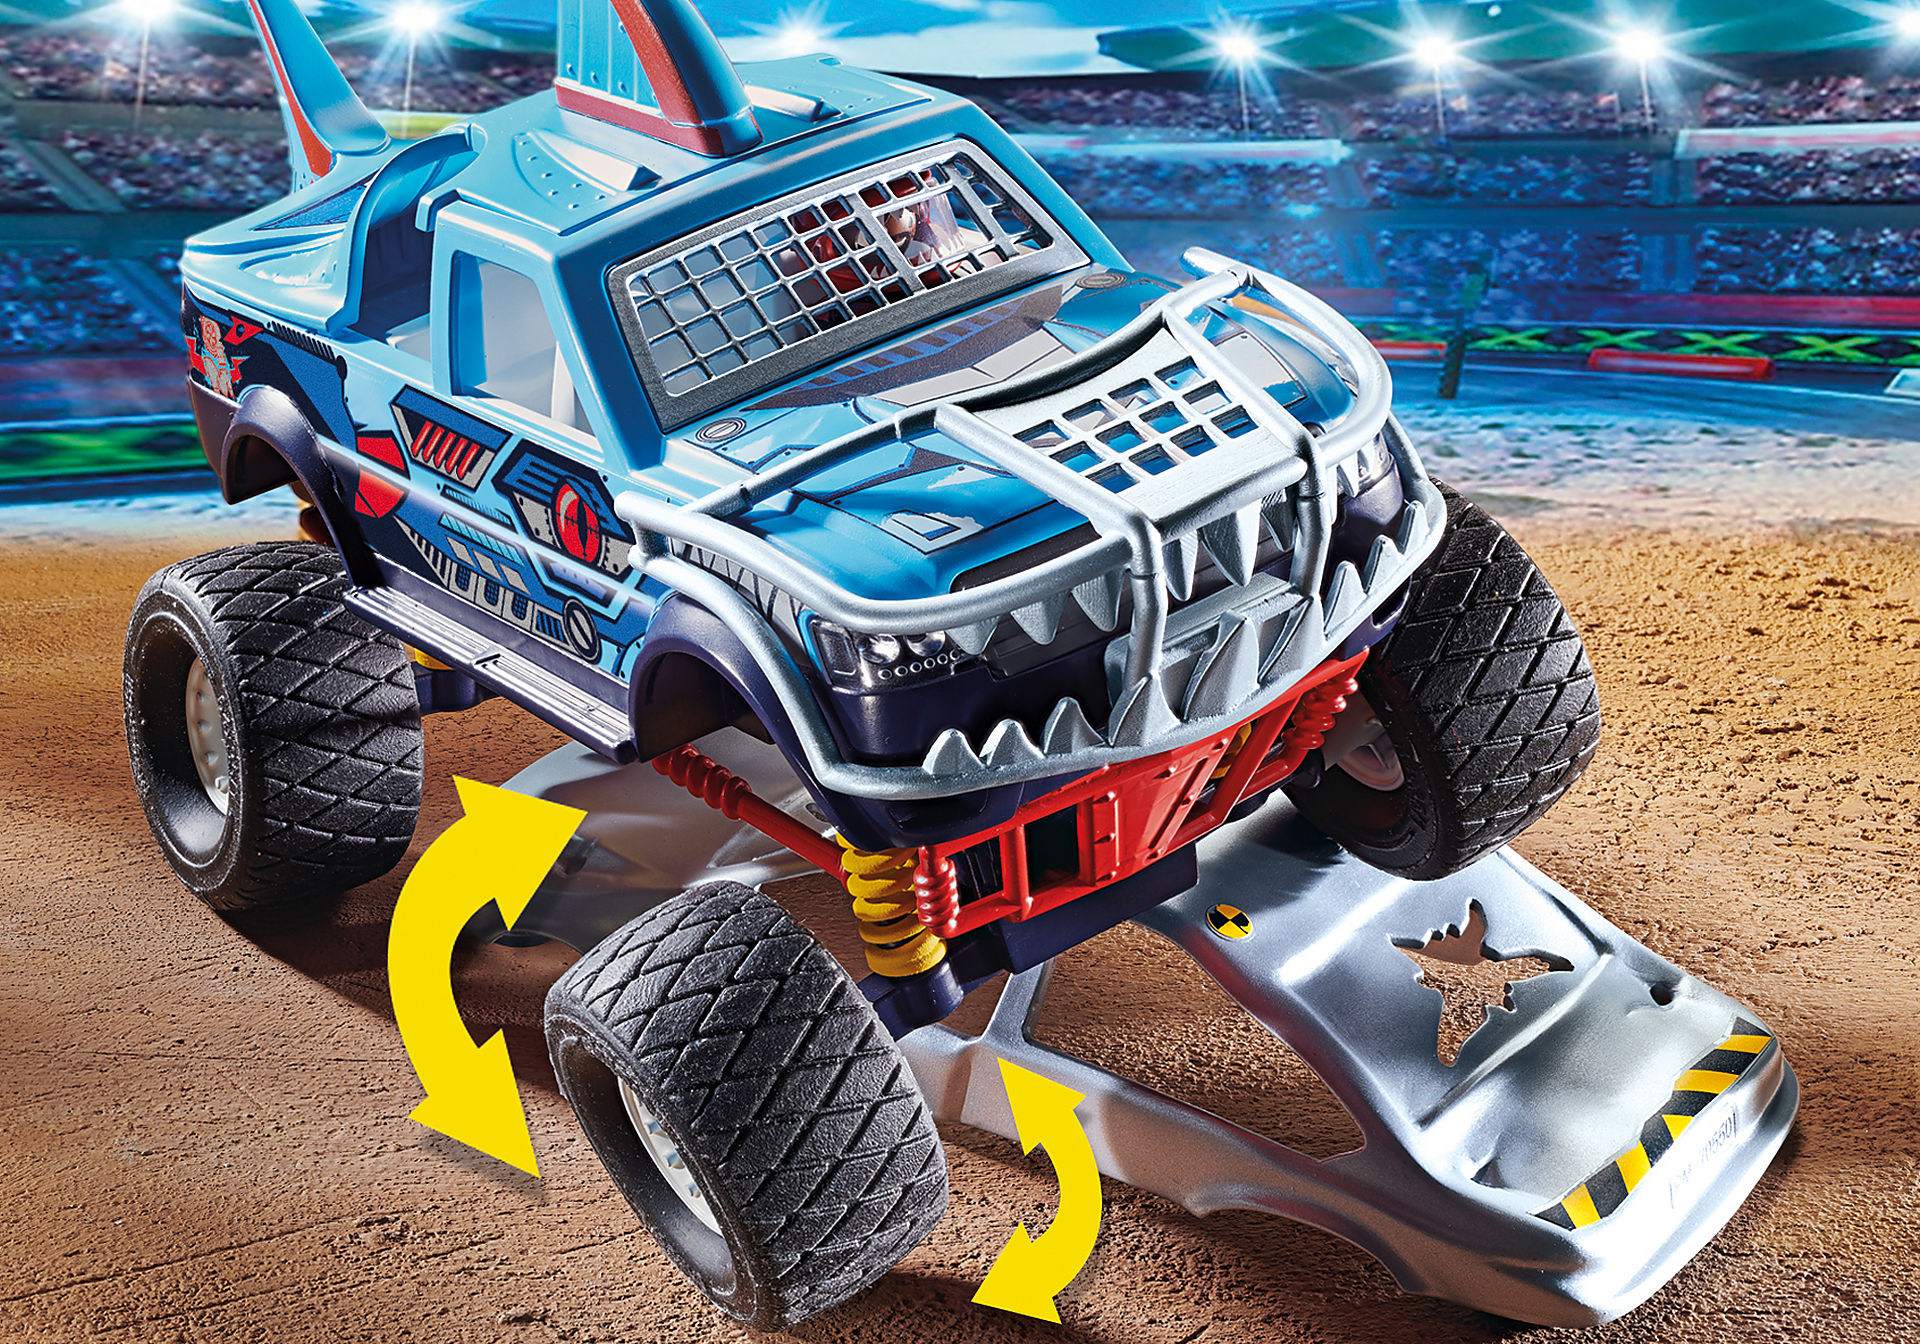 70550 Stunt Show Shark Monster Truck zoom image4